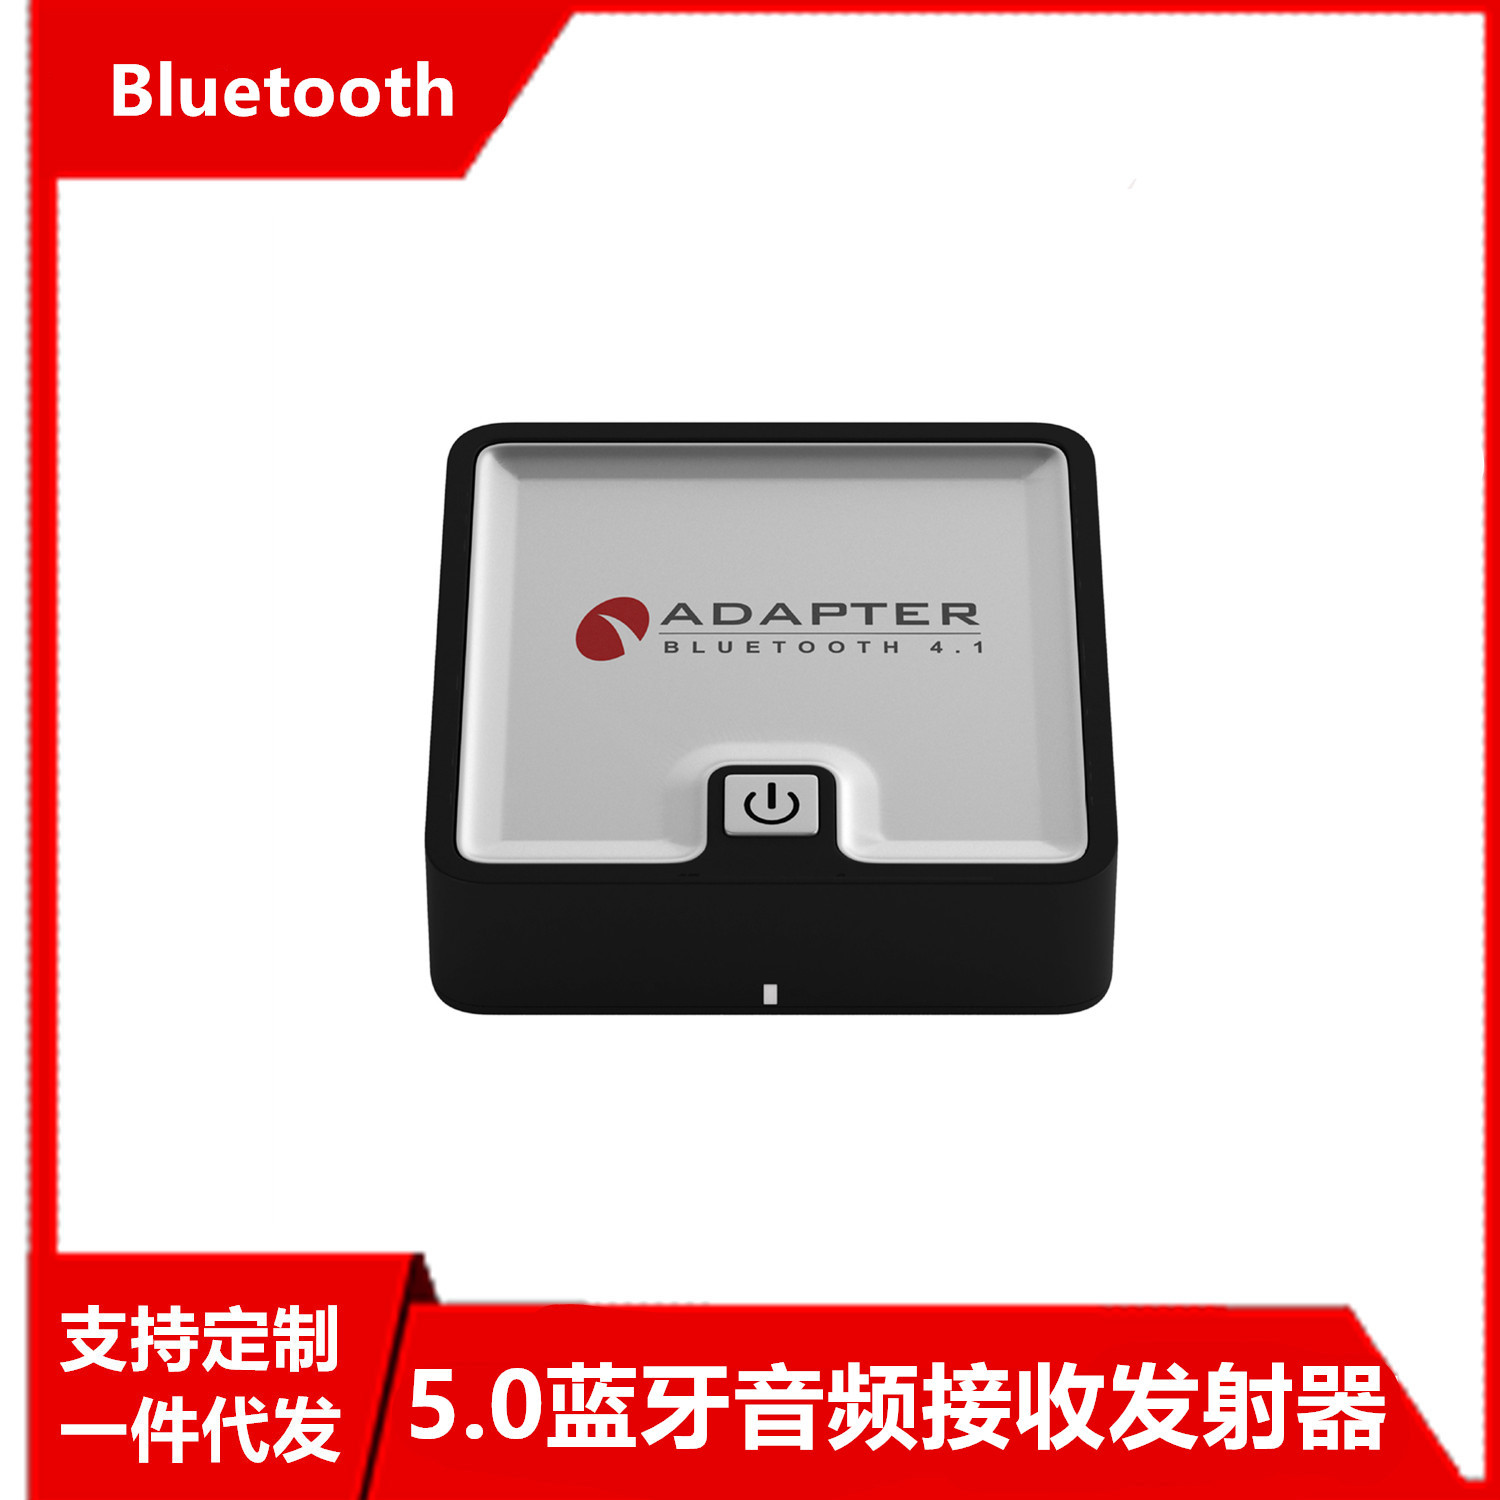 New Style Bti-039 Bluetooth Emission Arrival-in-New Style USB Bluetooth Adapter 4.1